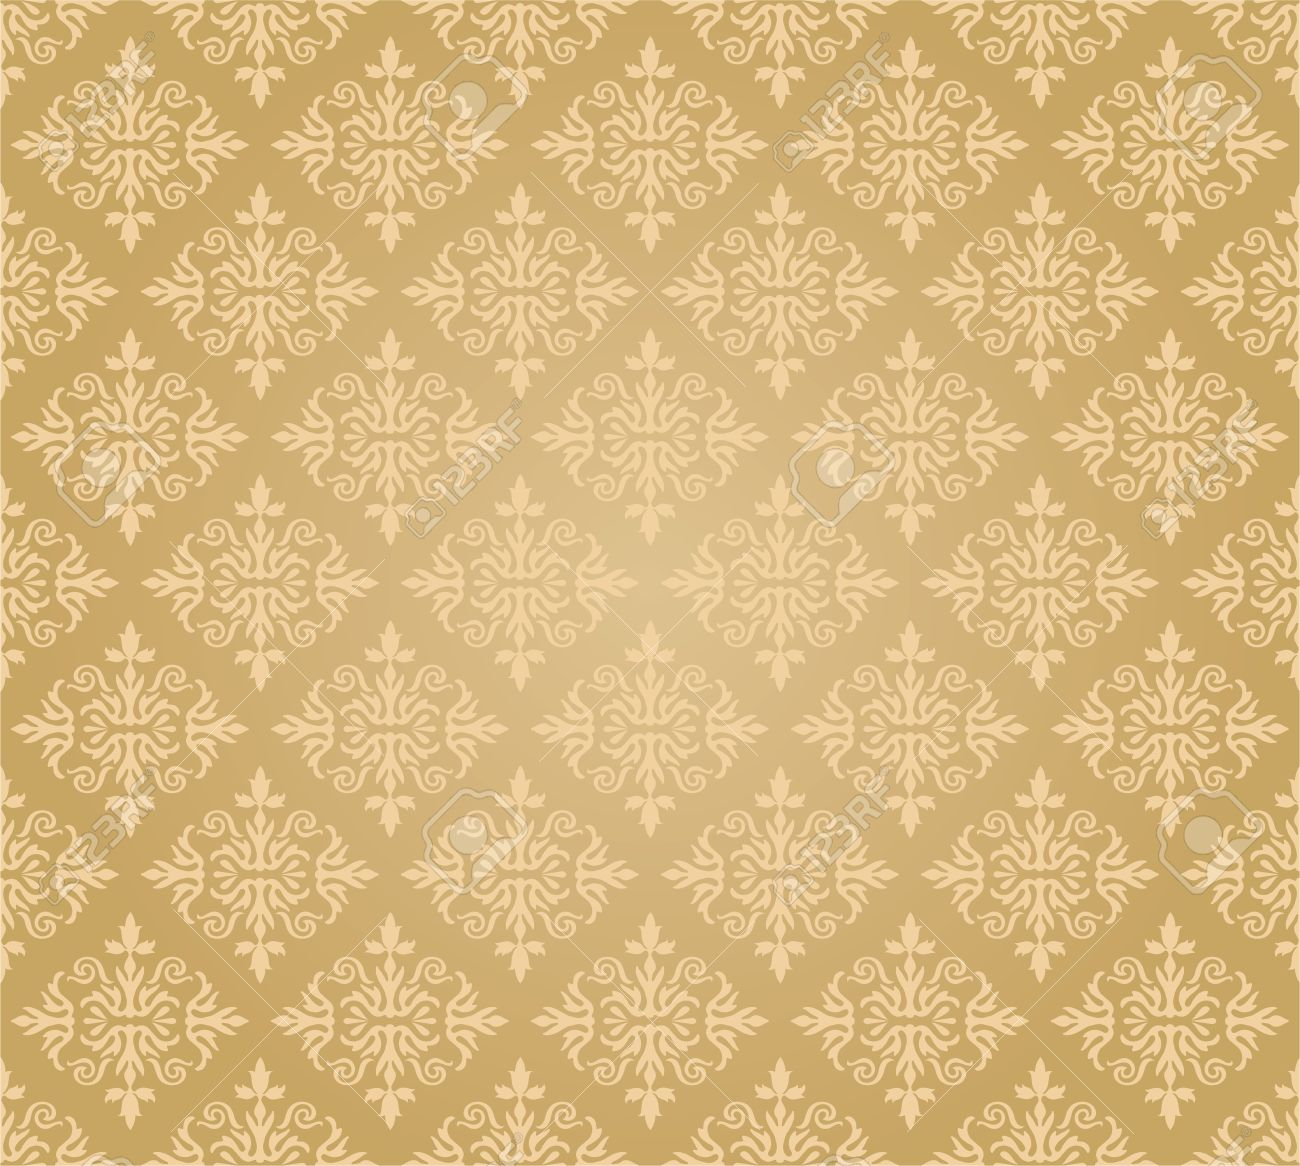 Seamless Golden Floral Wallpaper Diamond Pattern Royalty Free